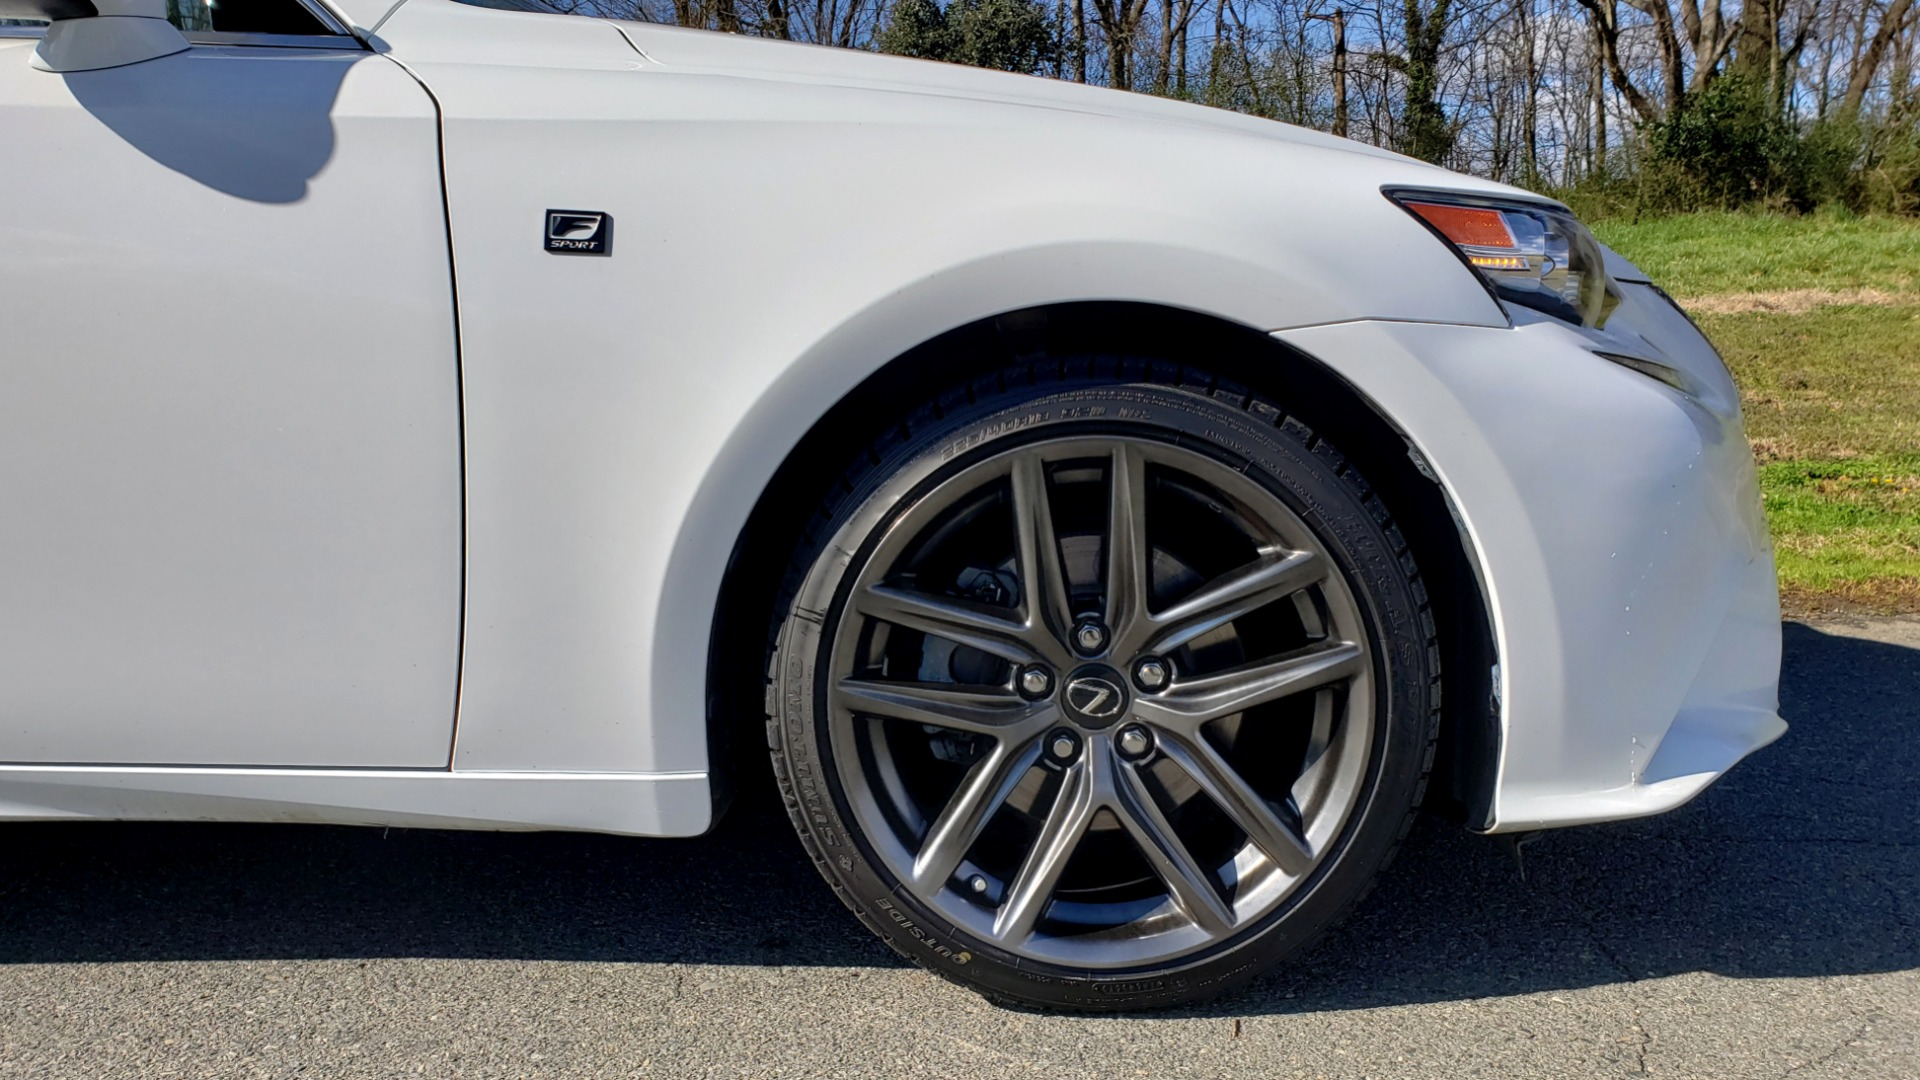 Used 2014 Lexus IS 250 F-SPORT / NAV / SUNROOF / REARVIEW / BSM for sale Sold at Formula Imports in Charlotte NC 28227 71